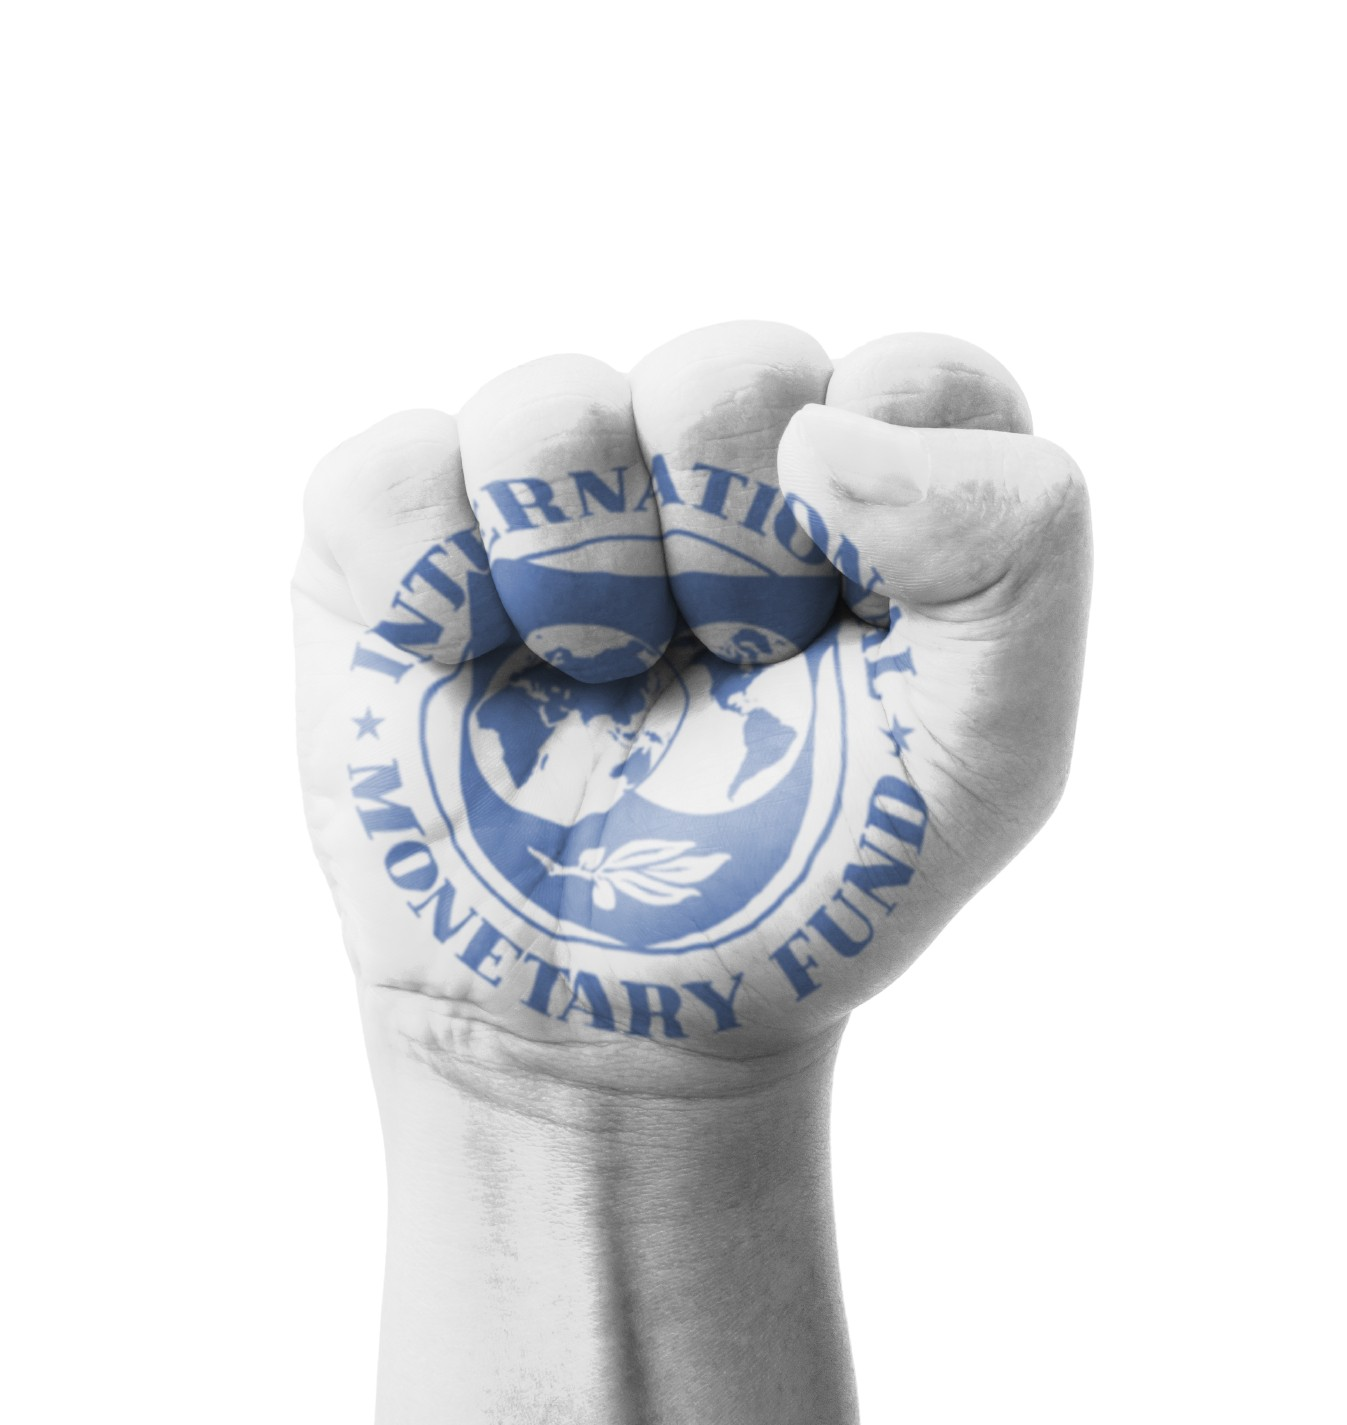 Fist of IMF (International Monetary Fund) flag painted, multi pu